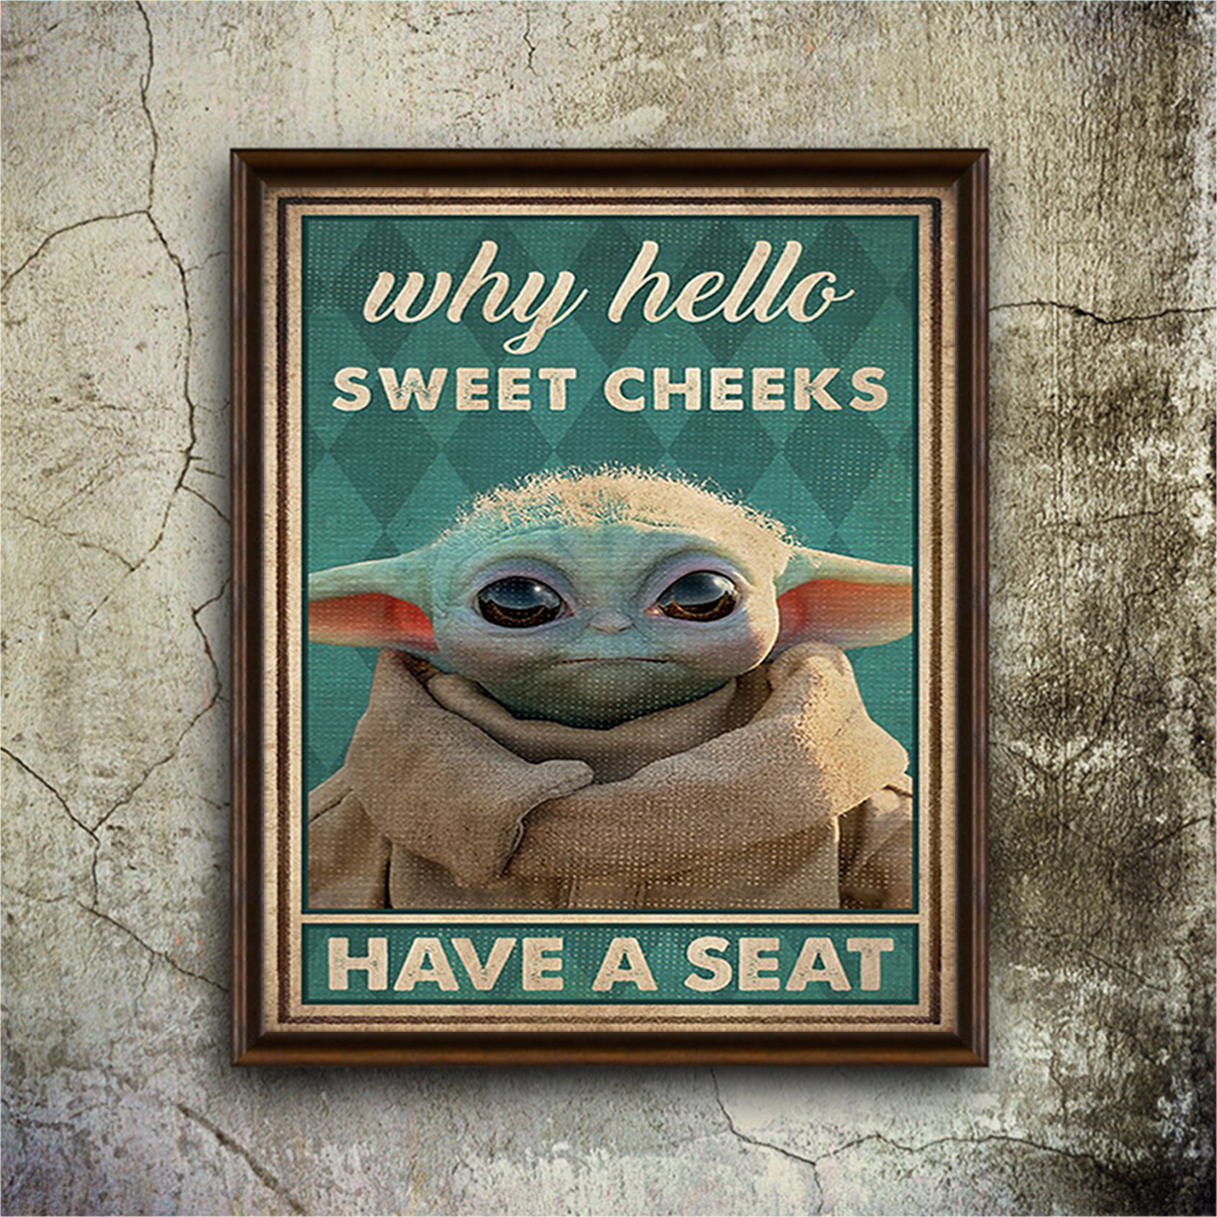 Baby yod why hello sweet cheeks have a seat poster A2